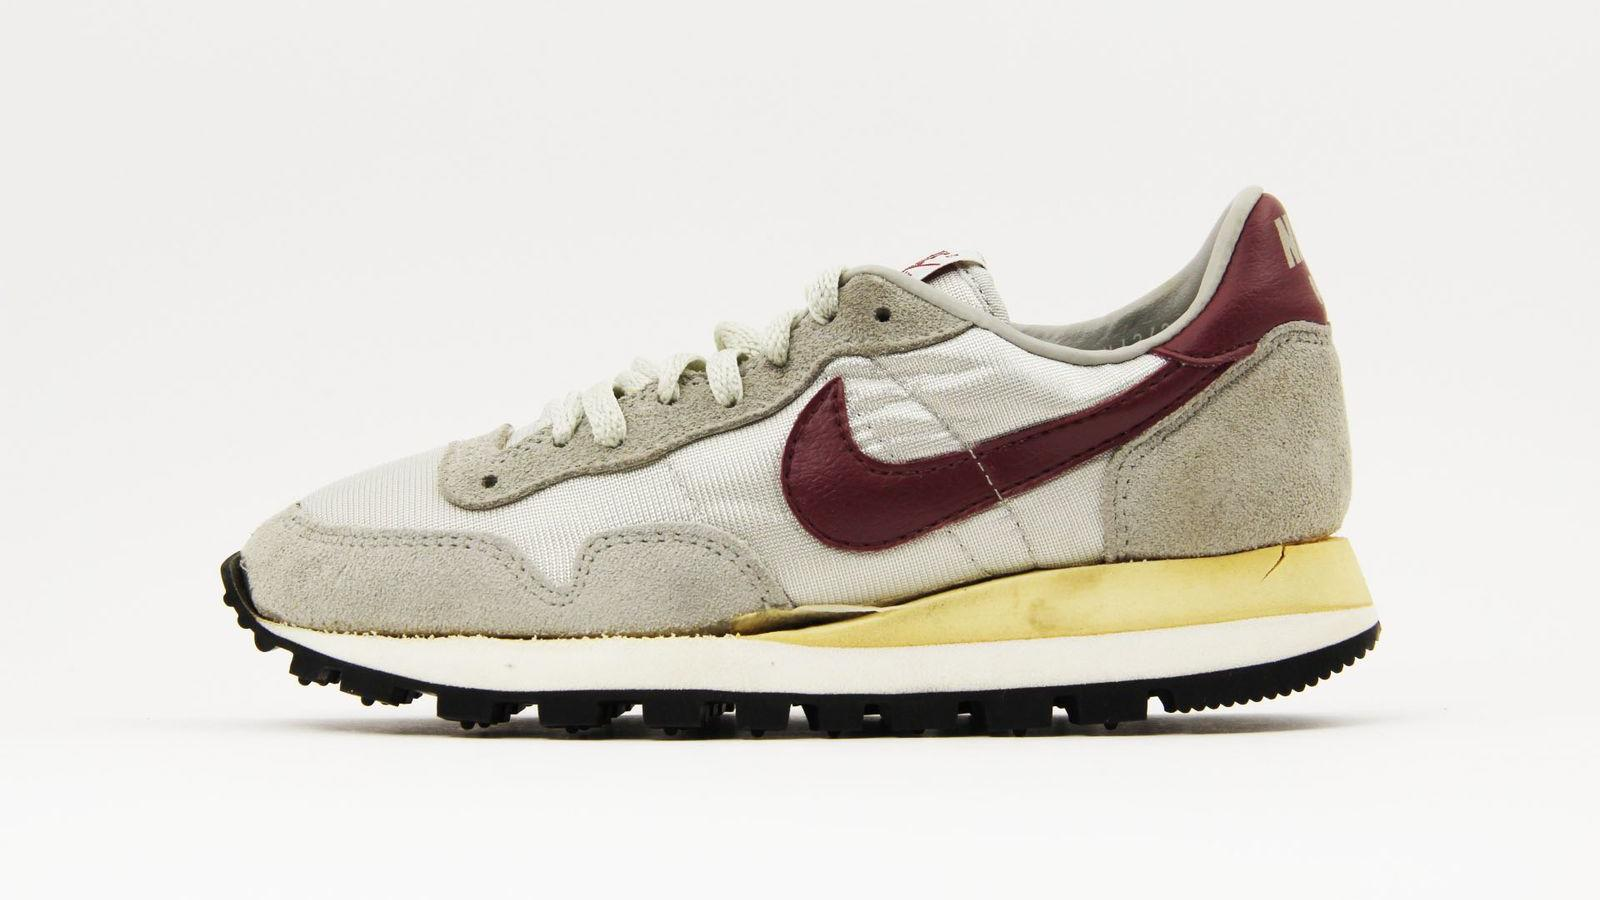 f9ae38dde8 10 Things You Didn't Know About the Nike Pegasus - Nike News